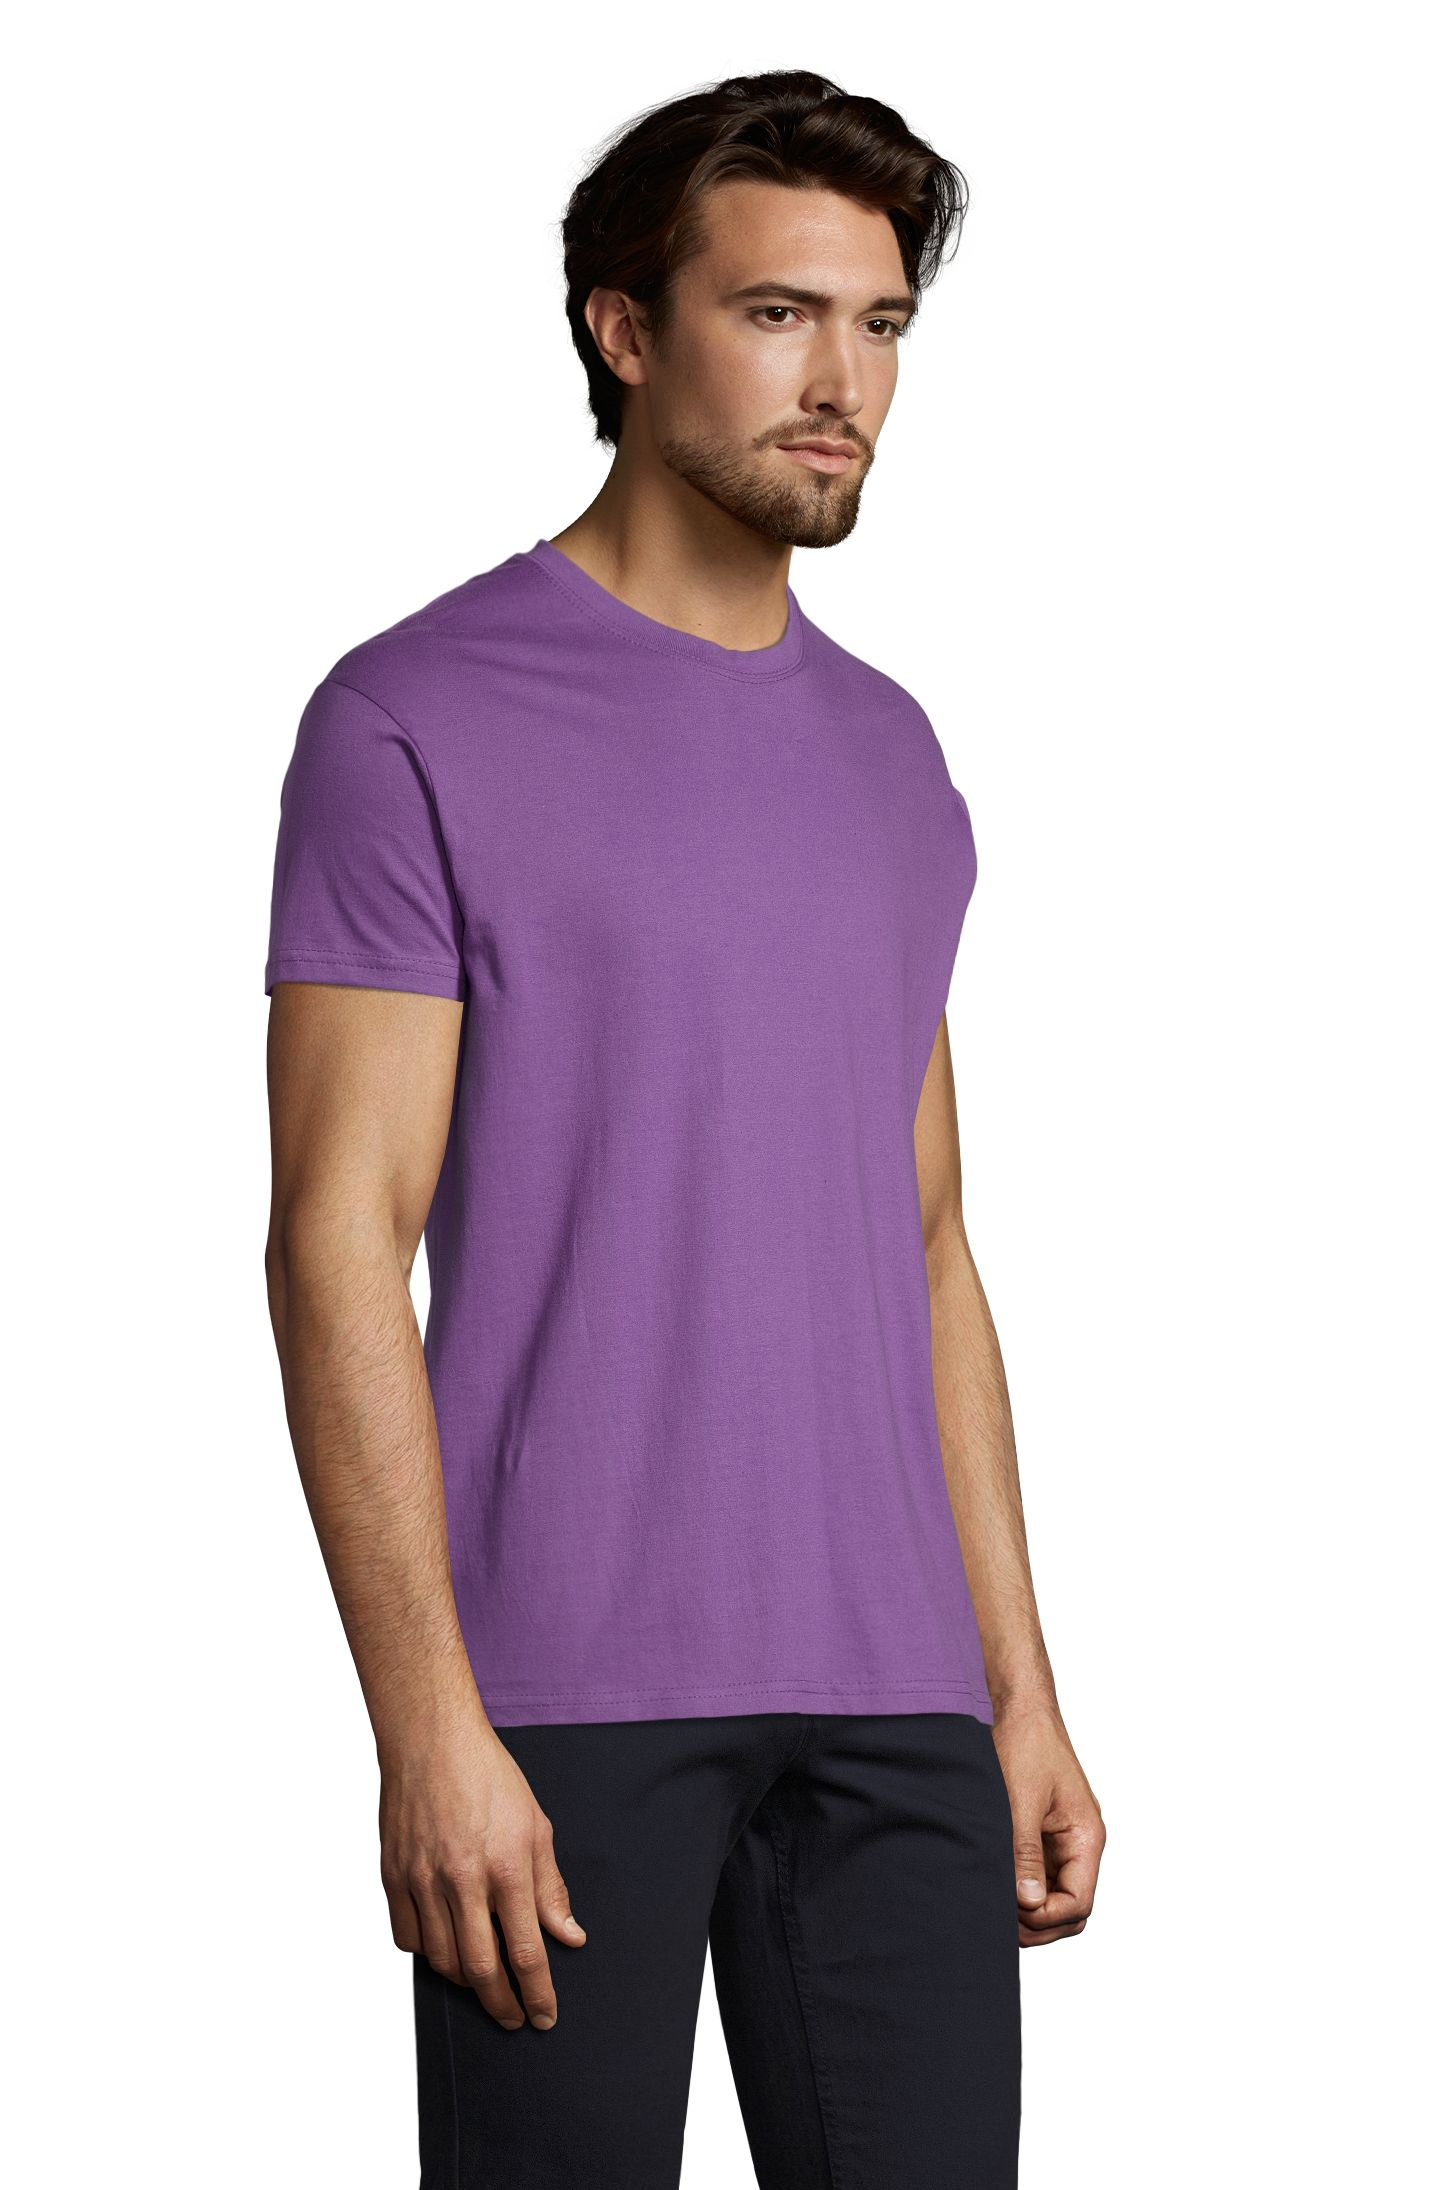 710 - Light purple